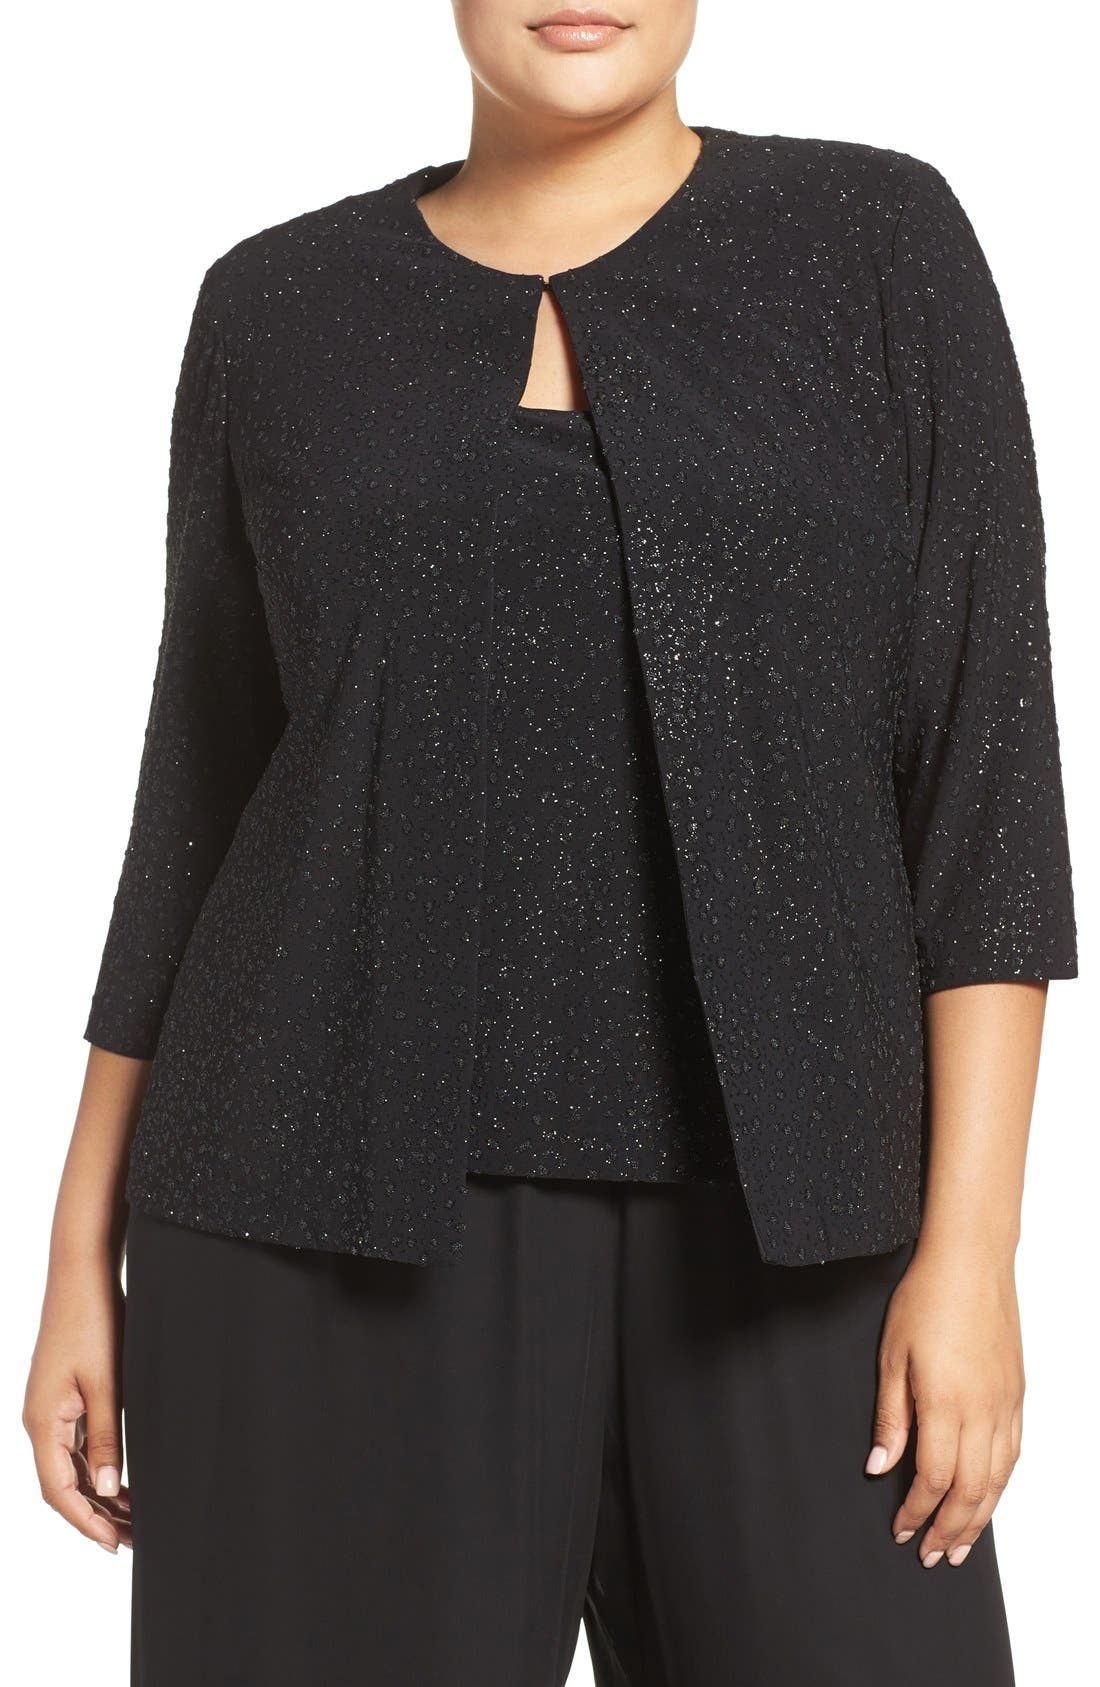 Alex Evenings Beaded Twinset (Plus Size)